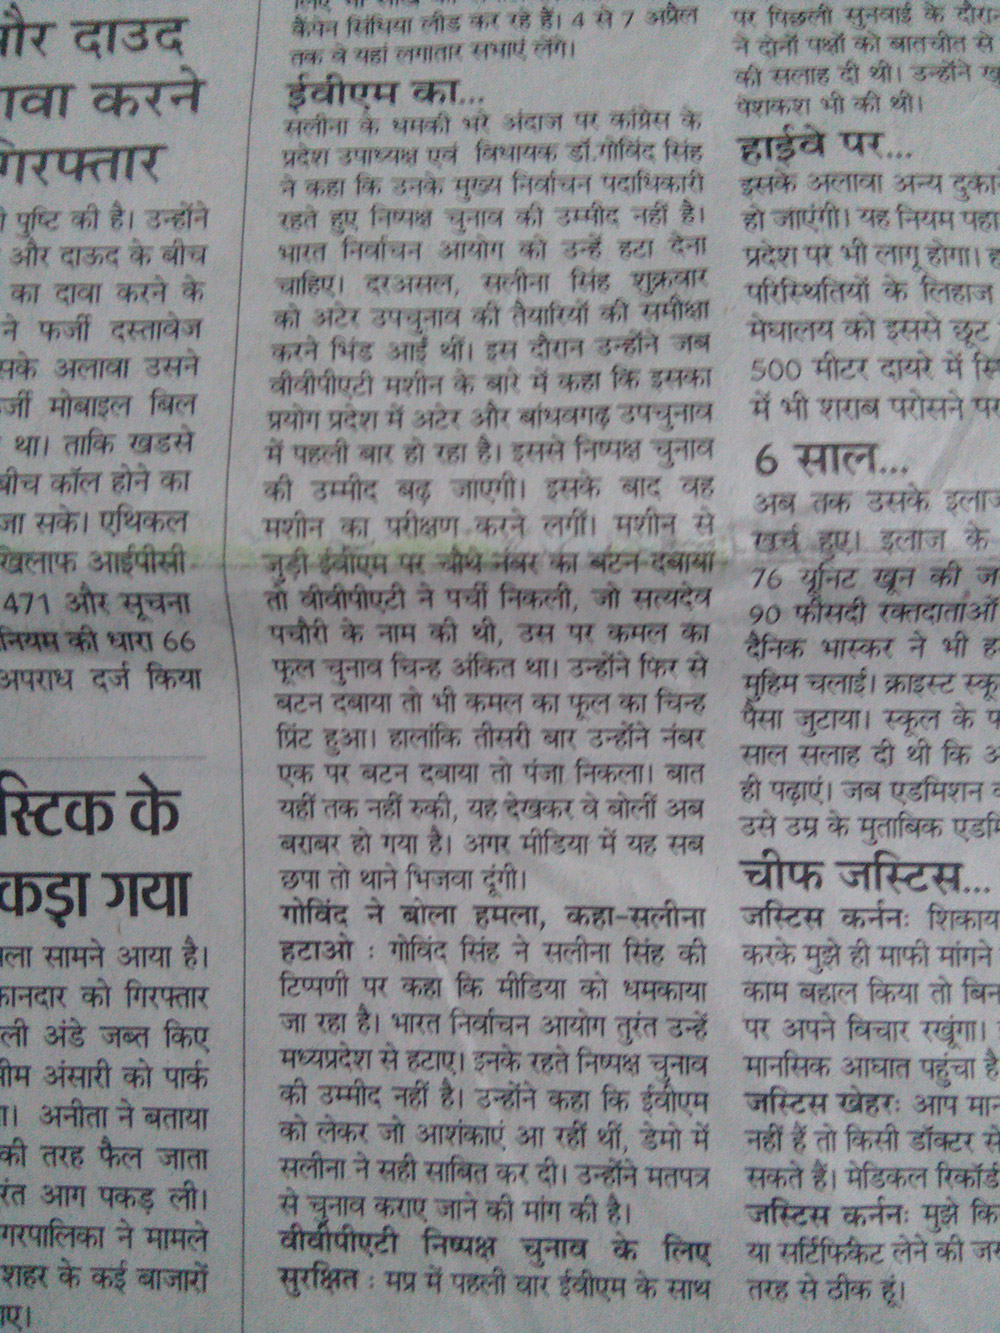 The continuation of the second report on Patrika.